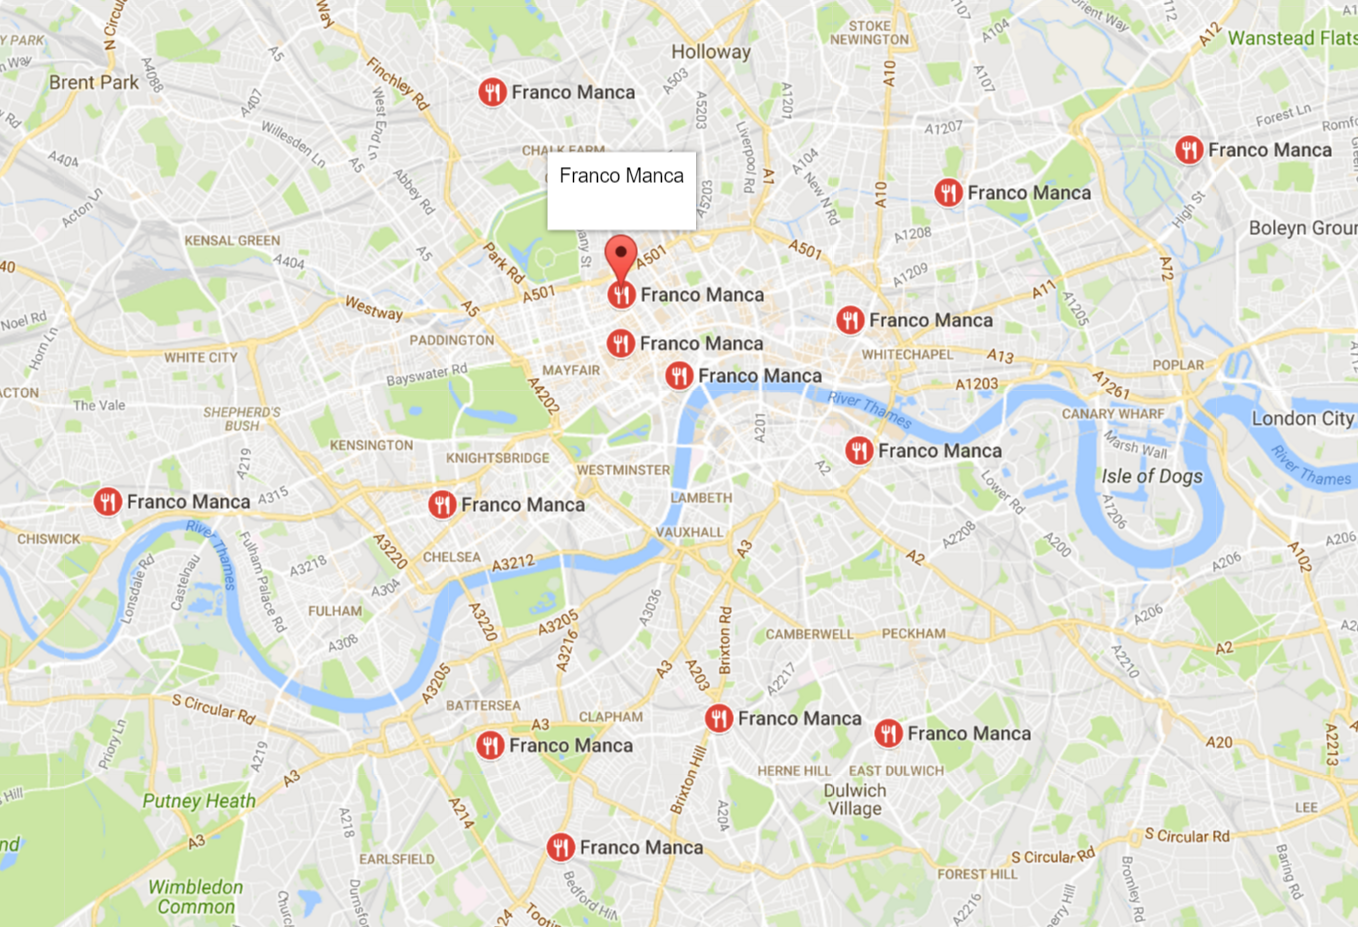 Some of the many locations where you can find a Franco Manca